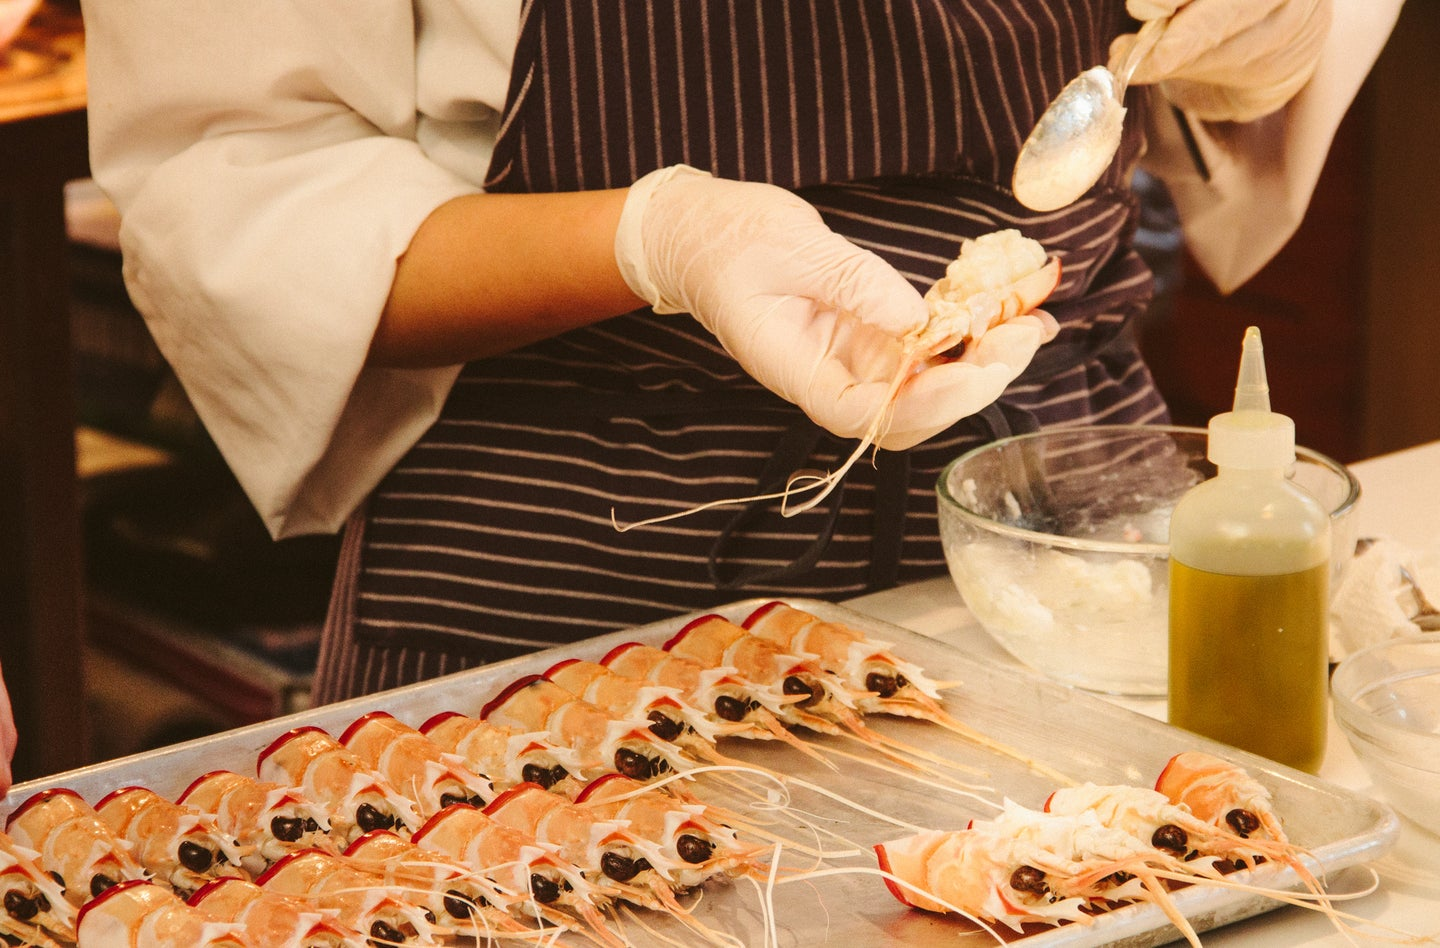 Prawn heads double as bowls for caviar and crab meat.